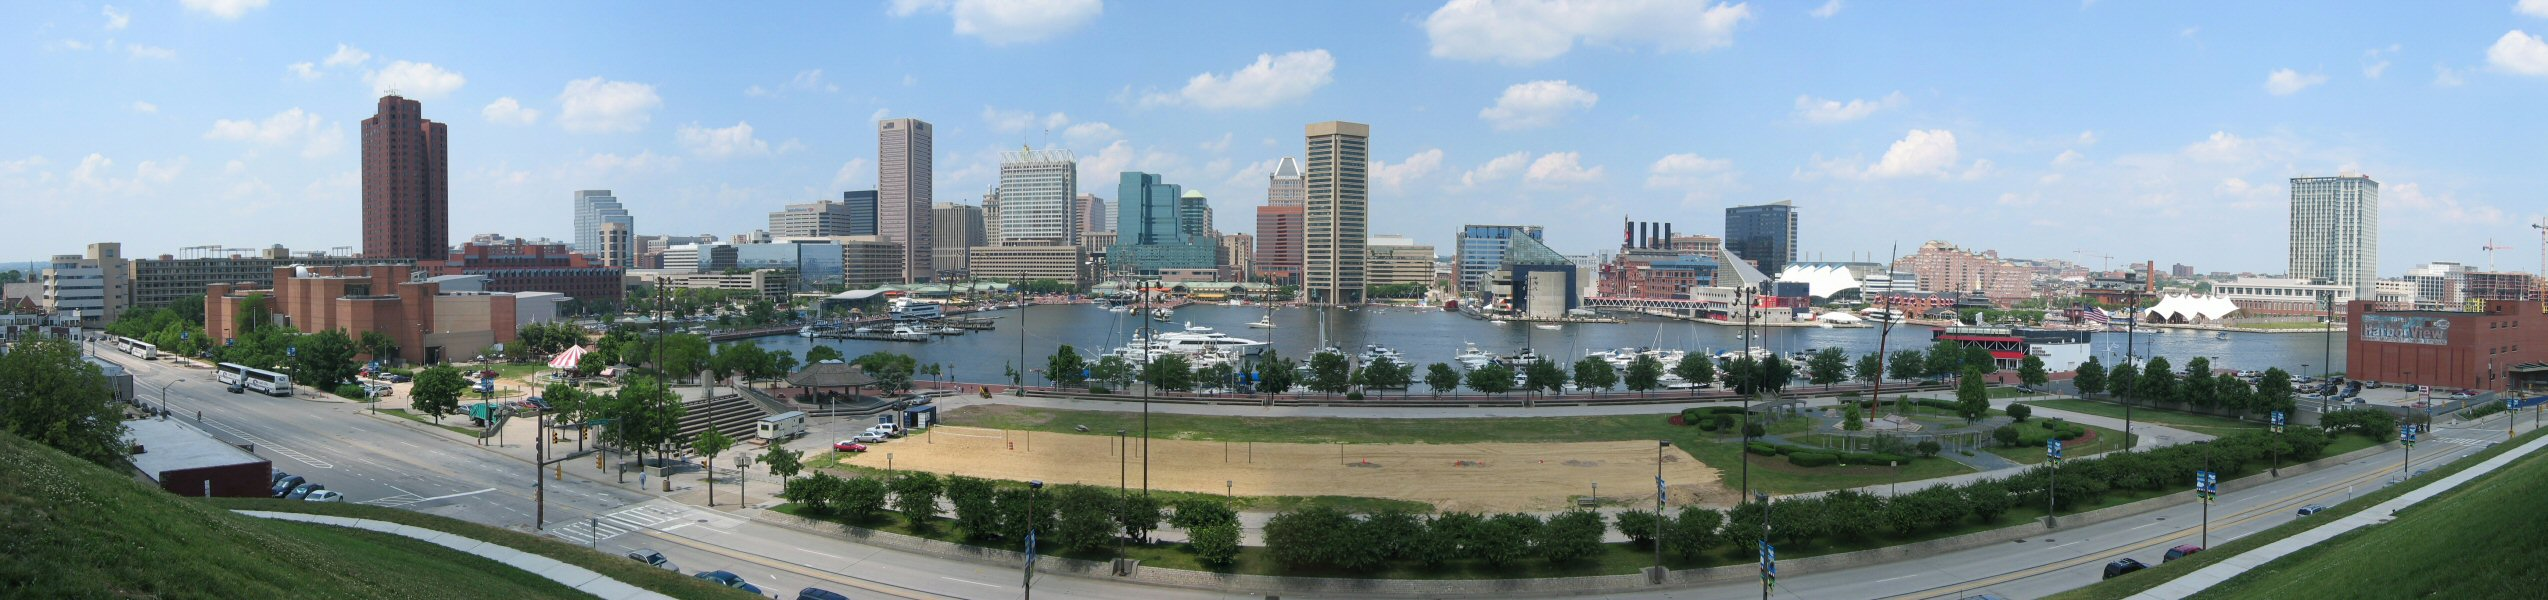 Baltimore Inner Harbor Panorama.jpg